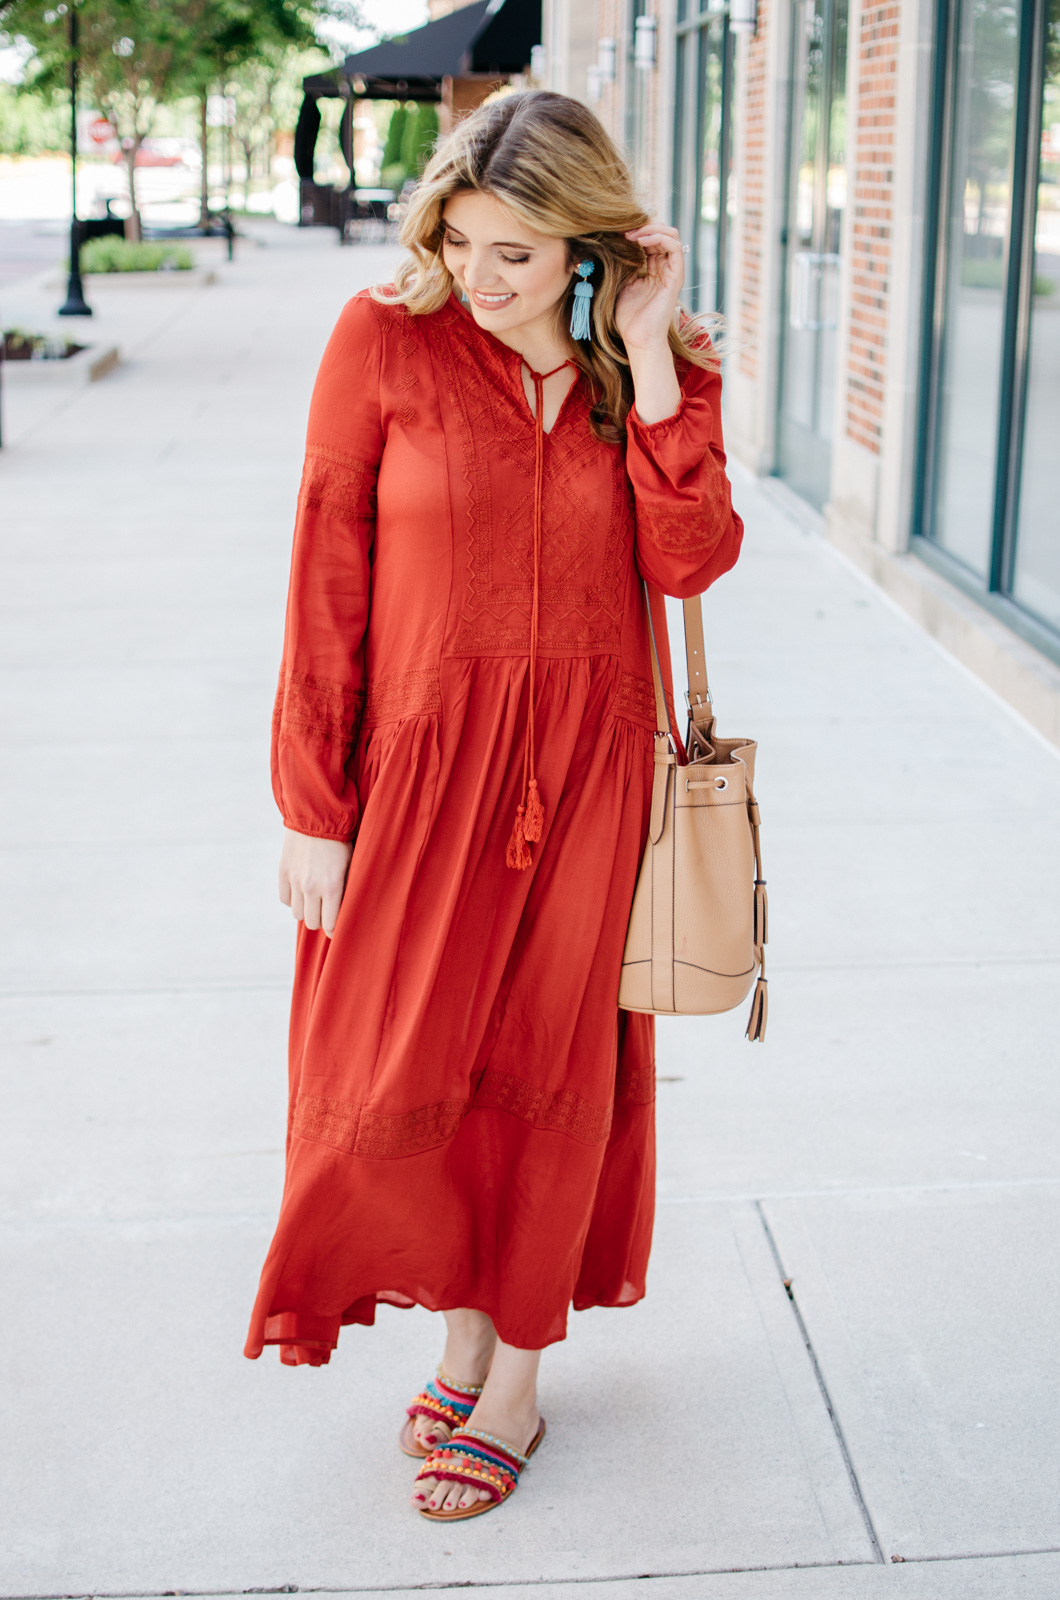 summer outfit ideas - boho maxi dress | For more cute casual outfit ideas, head to bylaurenm.com!